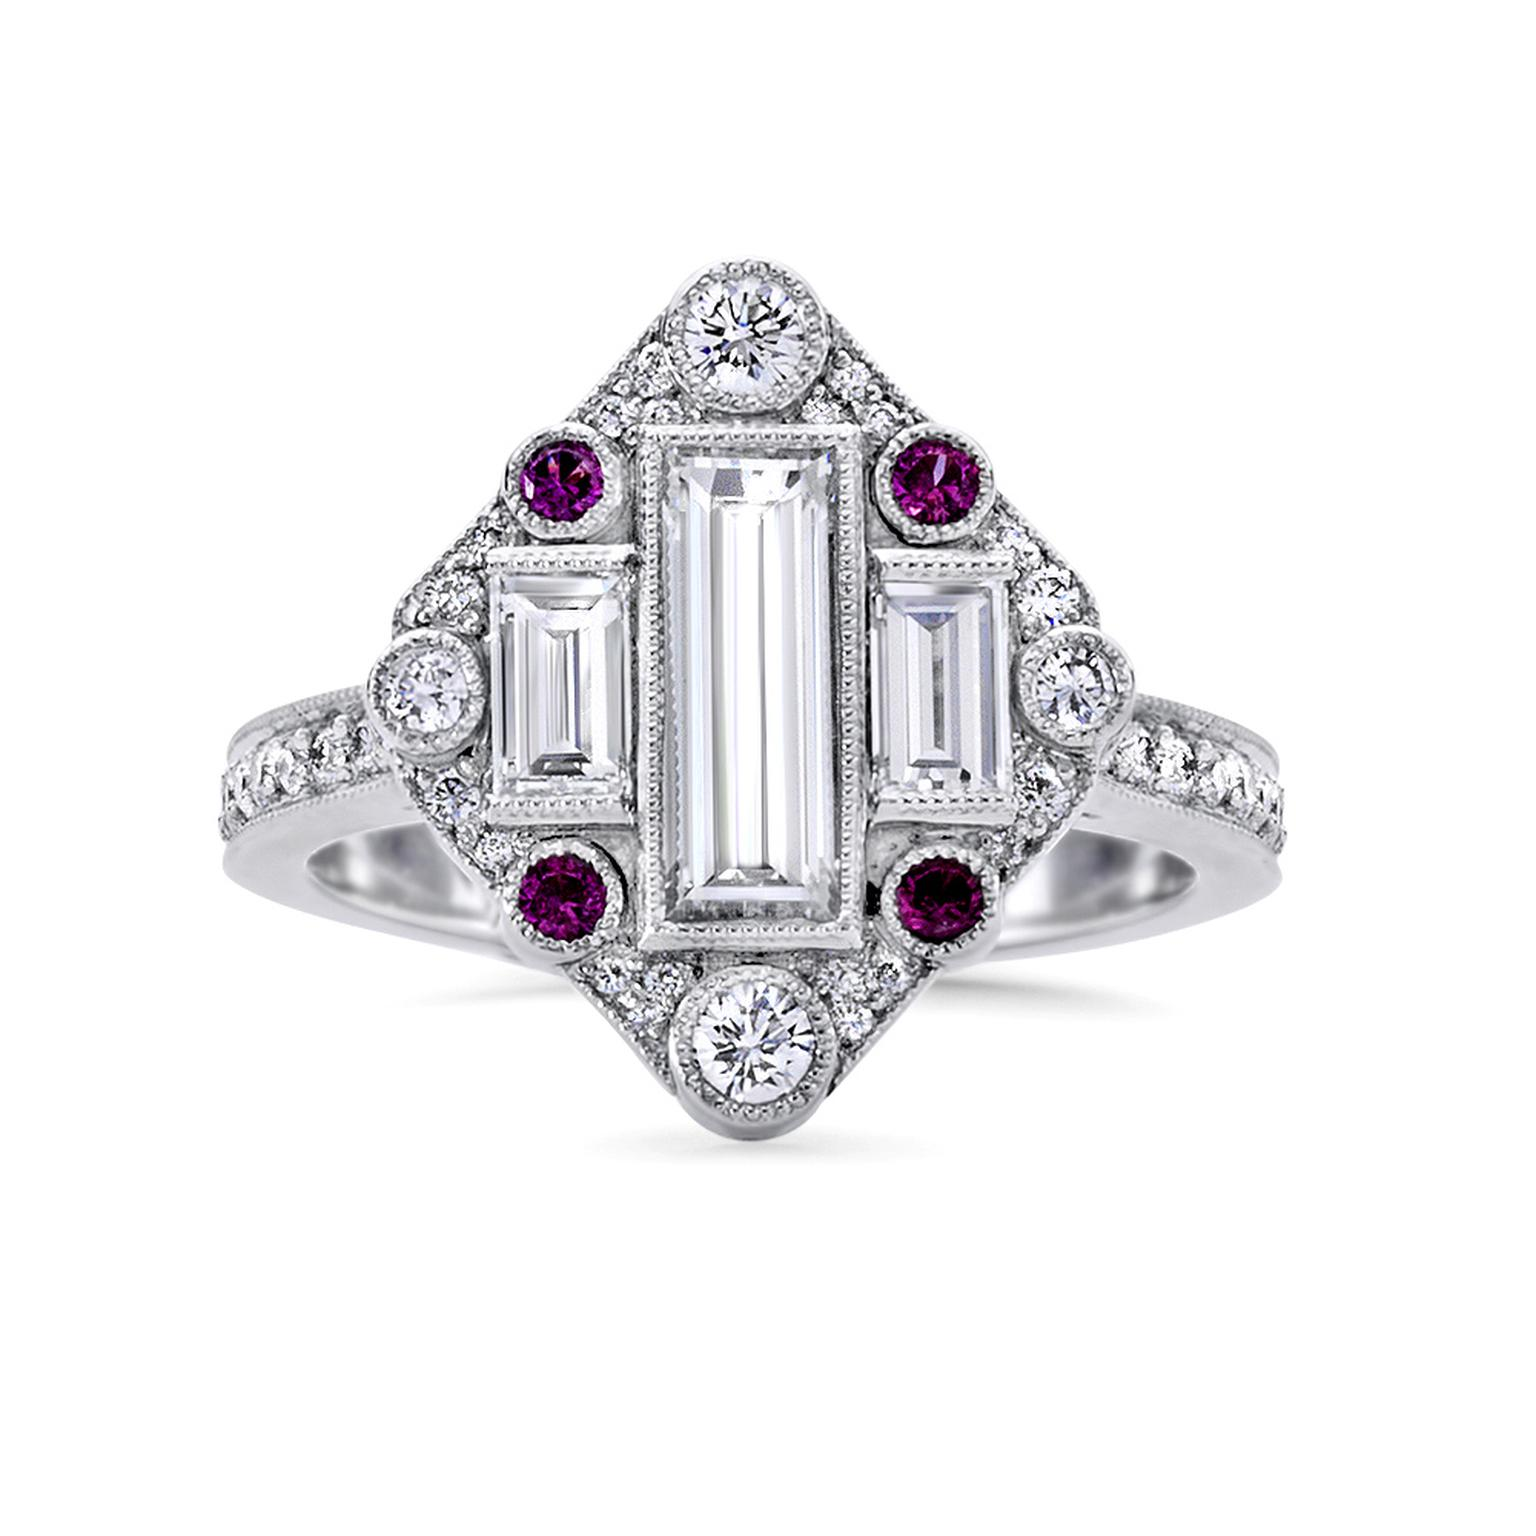 Fairfax & Roberts ruby and diamond engagement ring